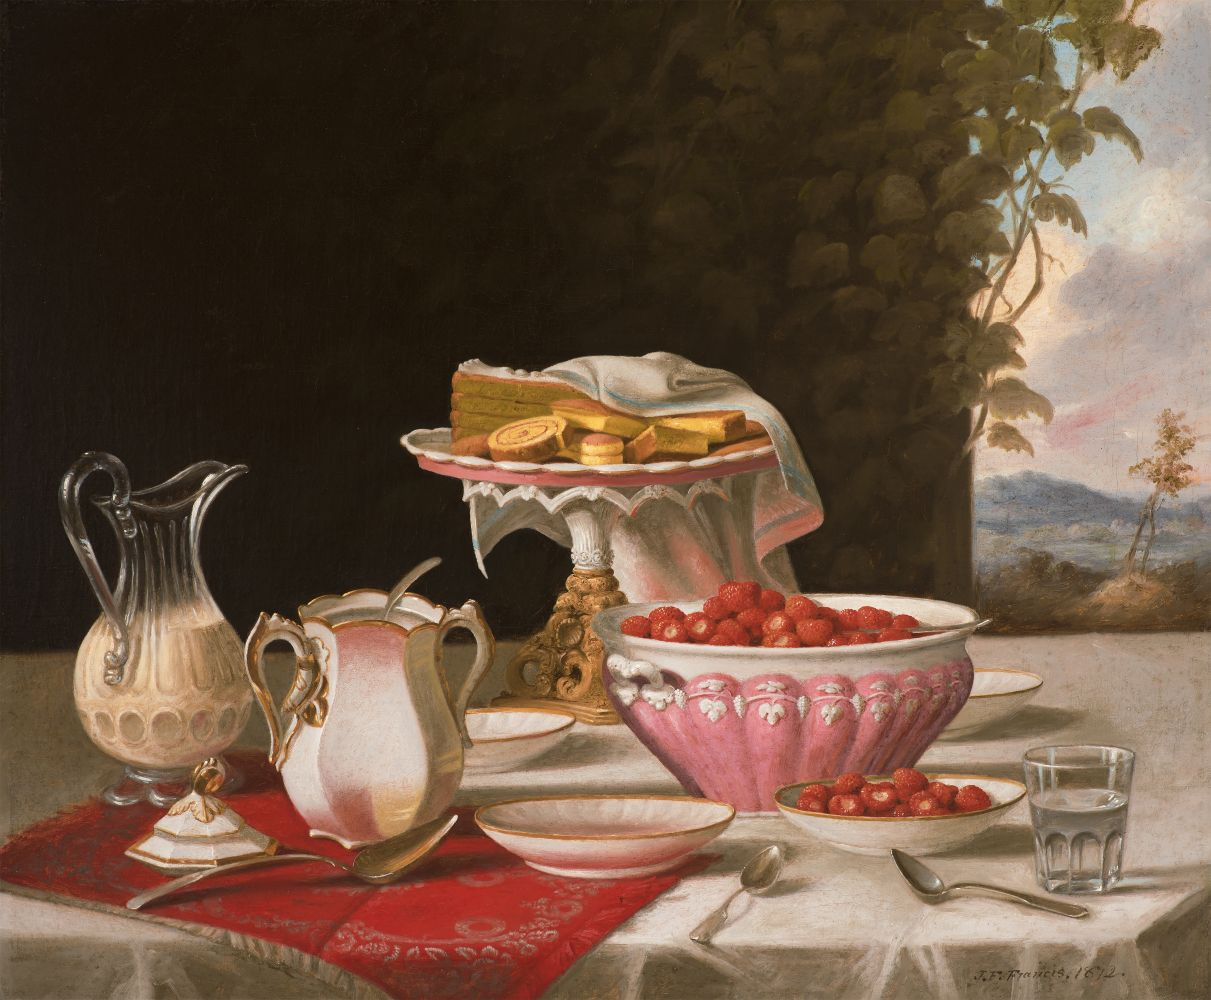 John F. Francis (1808–1886), The Dessert, 1872, oil on canvas, 25 x 30 ½ in., signed and dated lower right: J.F. Francis. 1872.